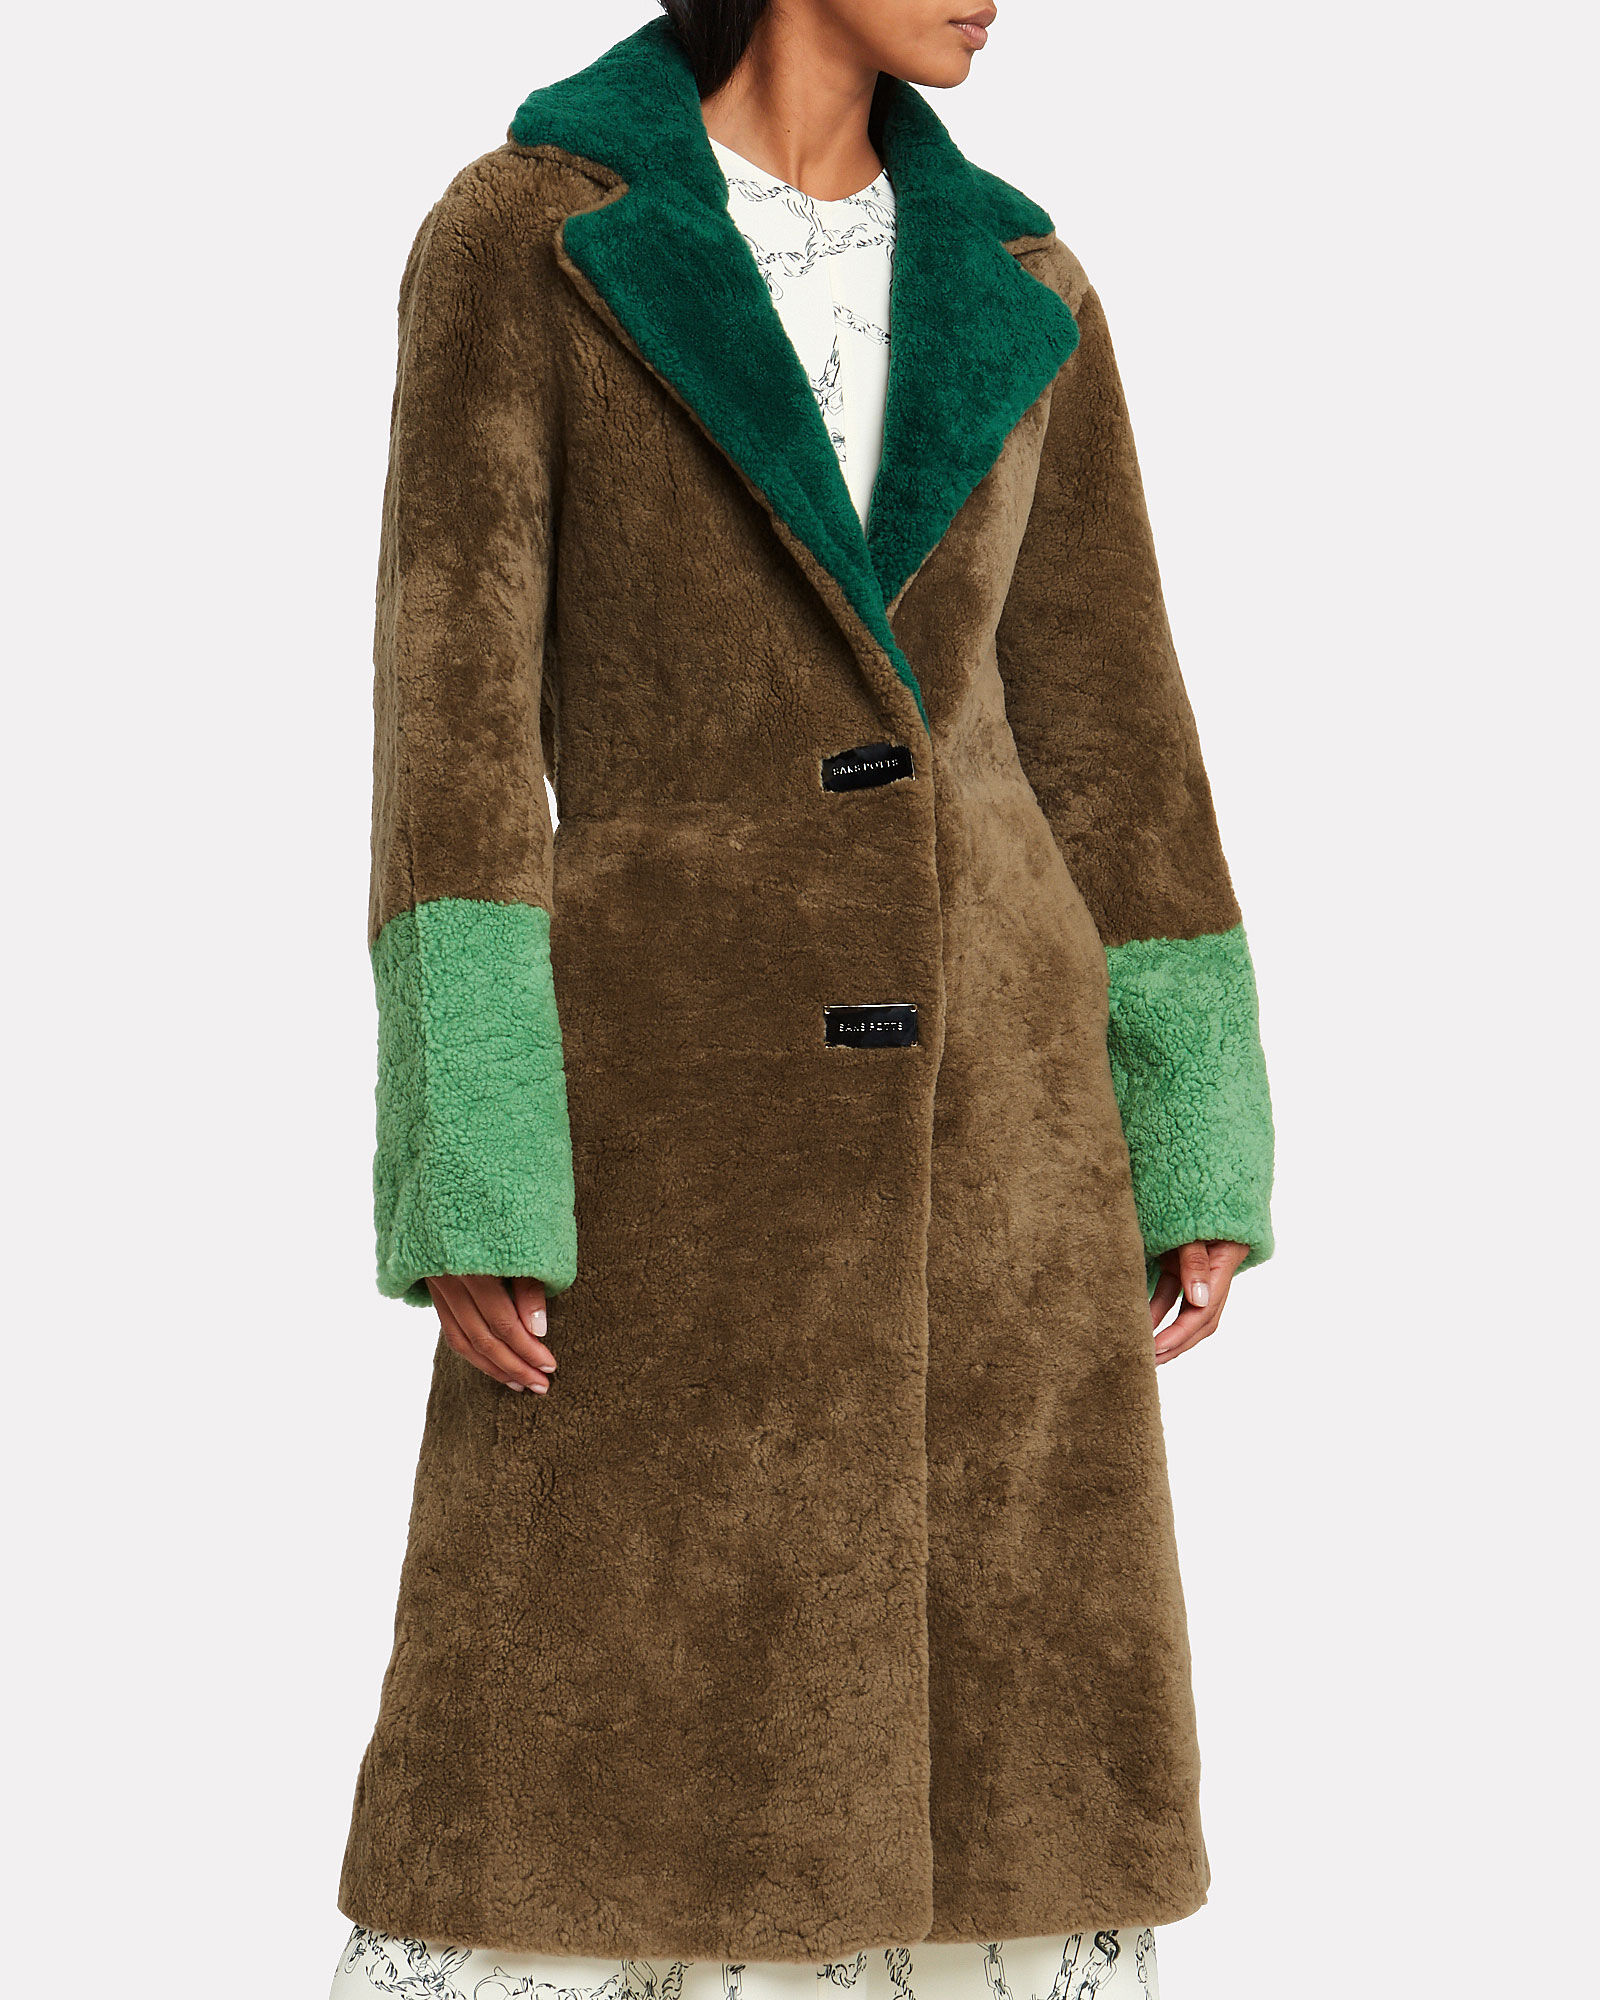 Febbe Colorblock Shearling Coat, COCOA/GREEN, hi-res